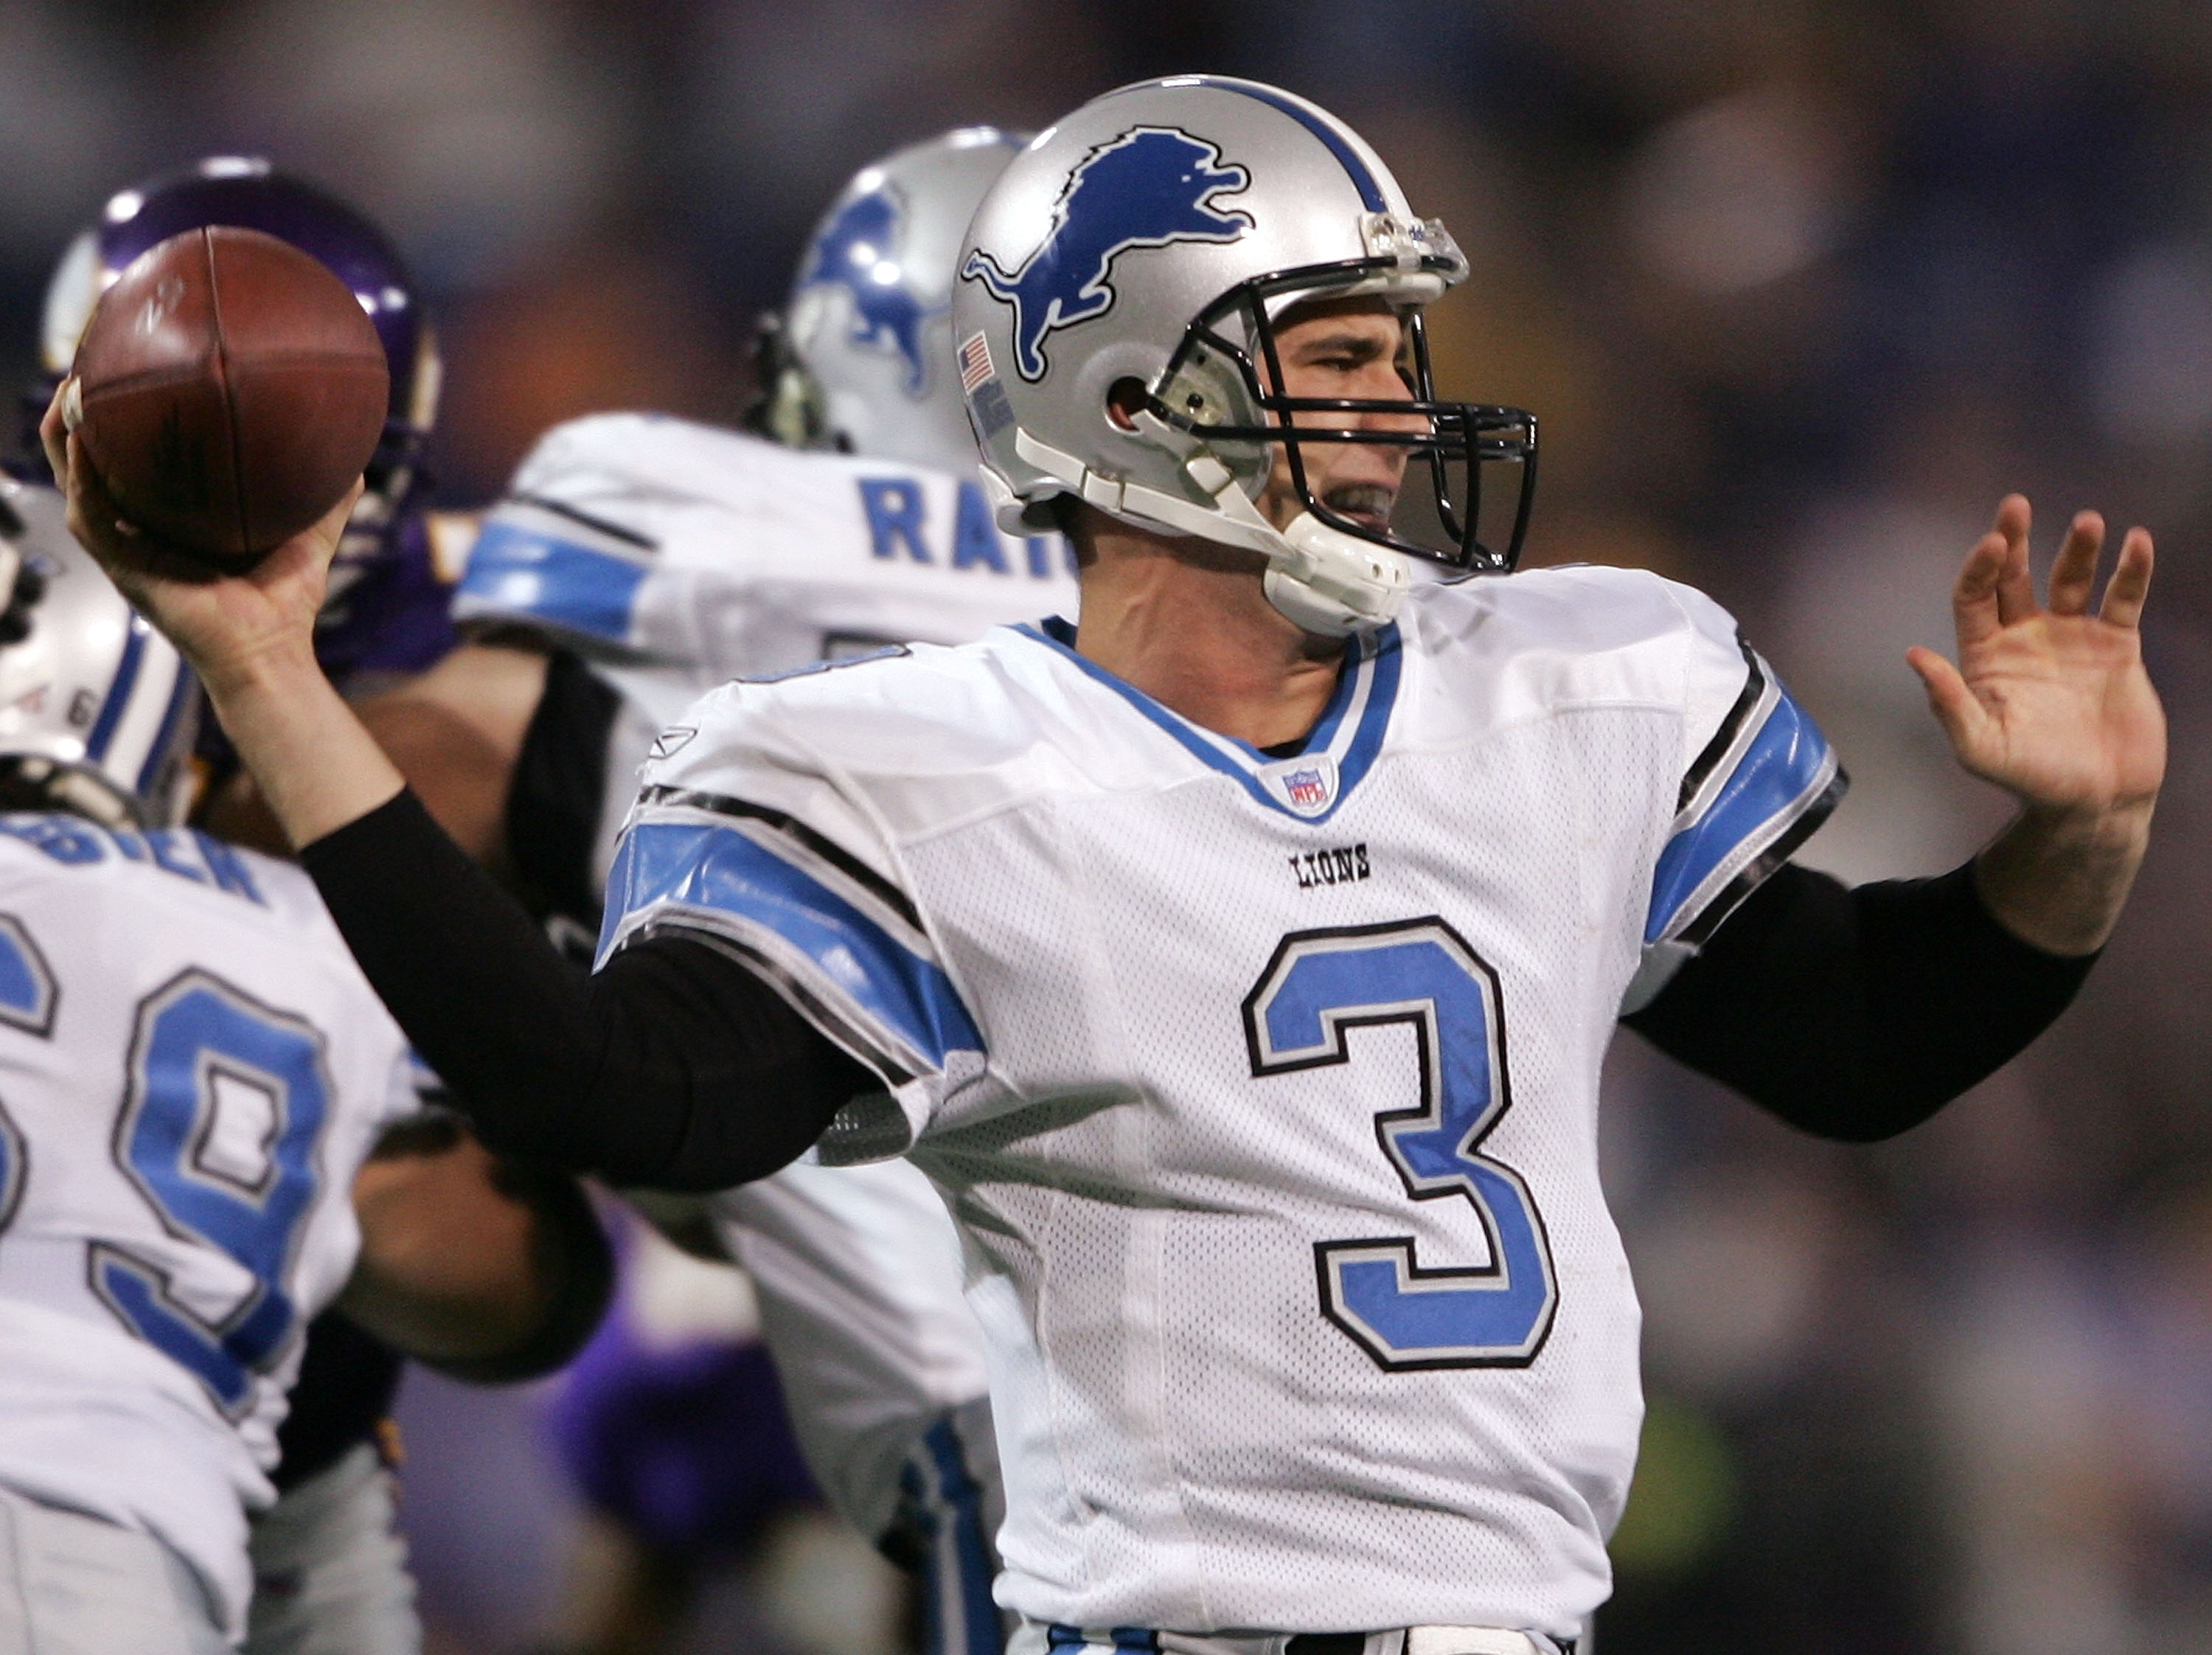 MINNEAPOLIS - NOVEMBER 6: Joey Harrington #3 of  the Detroit Lions tries to pass in the second half against the Minnesota Vikings on November 6, 2005 at the Hubert H. Humphrey Metrodome in Minneapolis, Minnesota.  The Minnesota Vikings defeated the Detroi